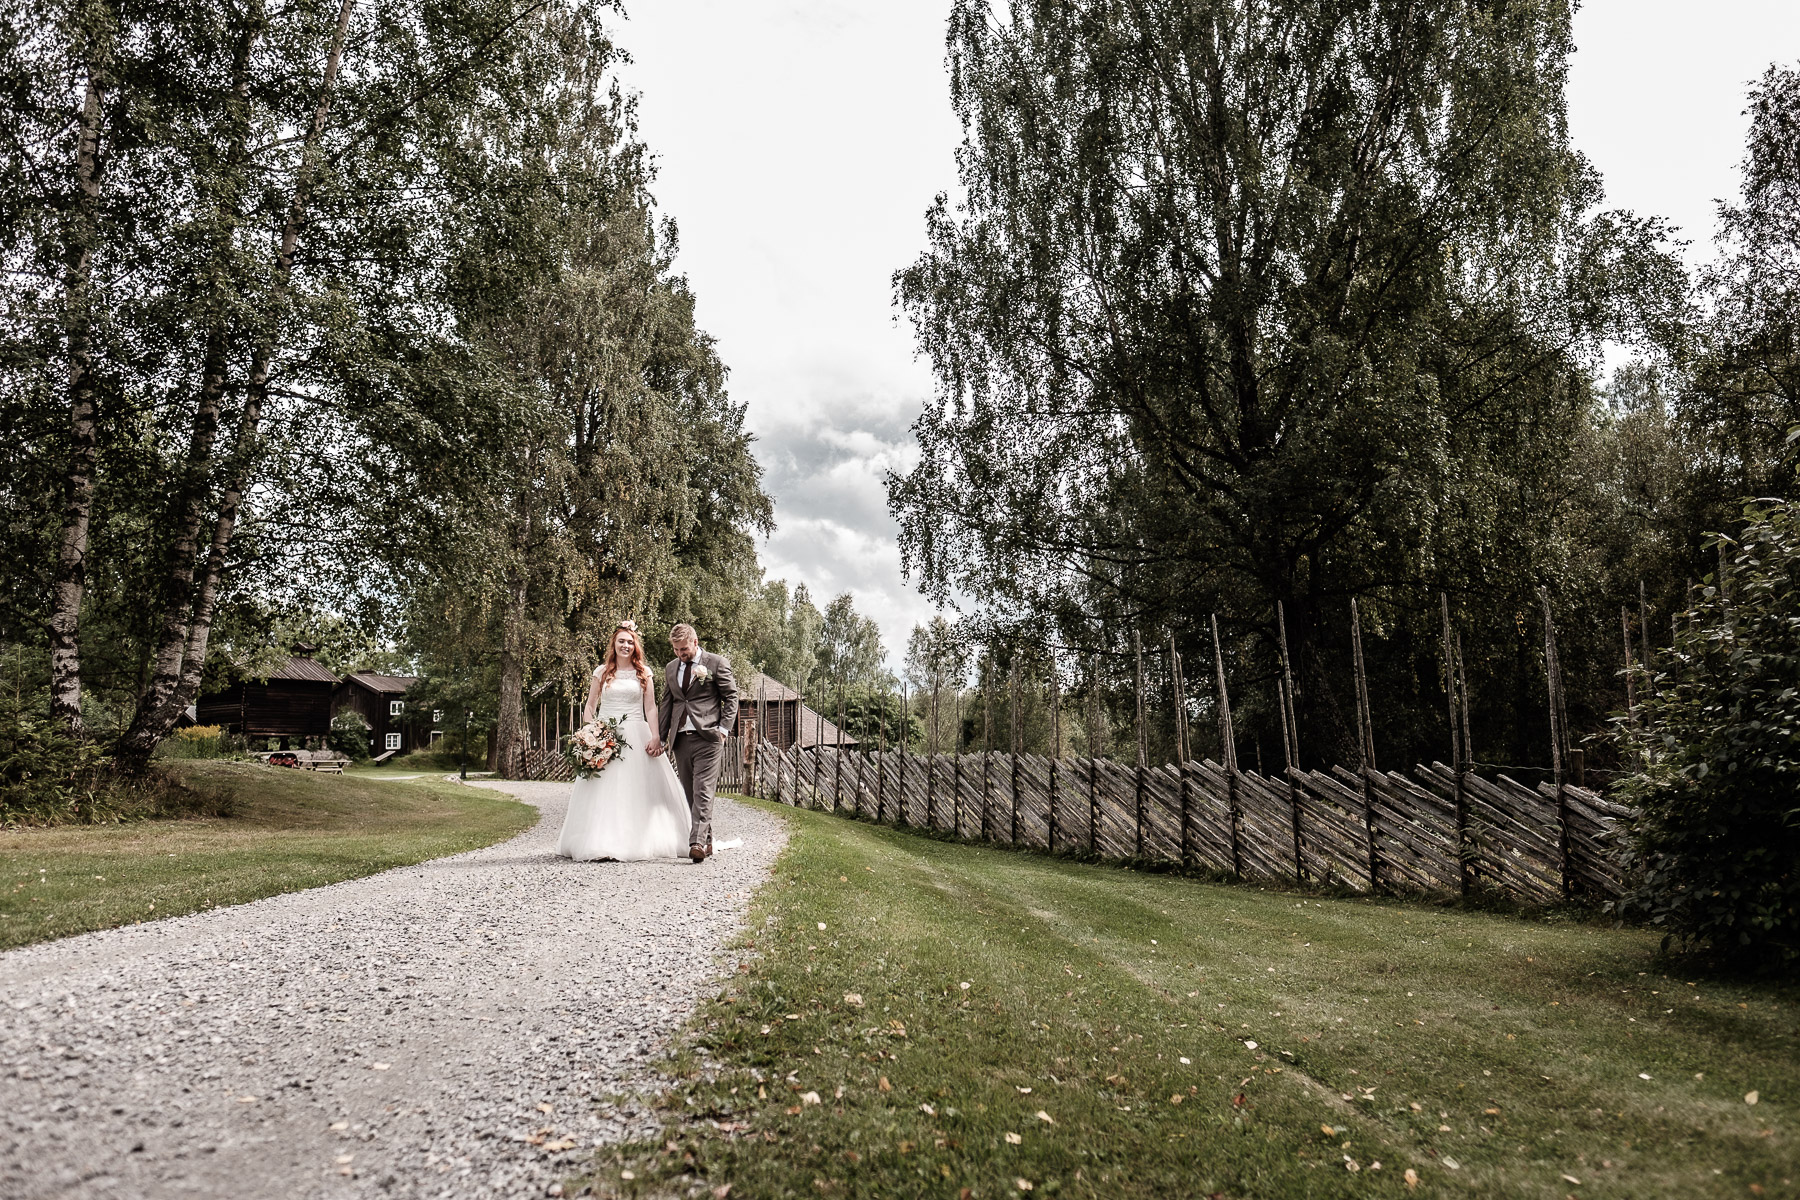 Click to enlarge image elise-christoffer-eidsvoll-ottossonphoto-1035.jpg